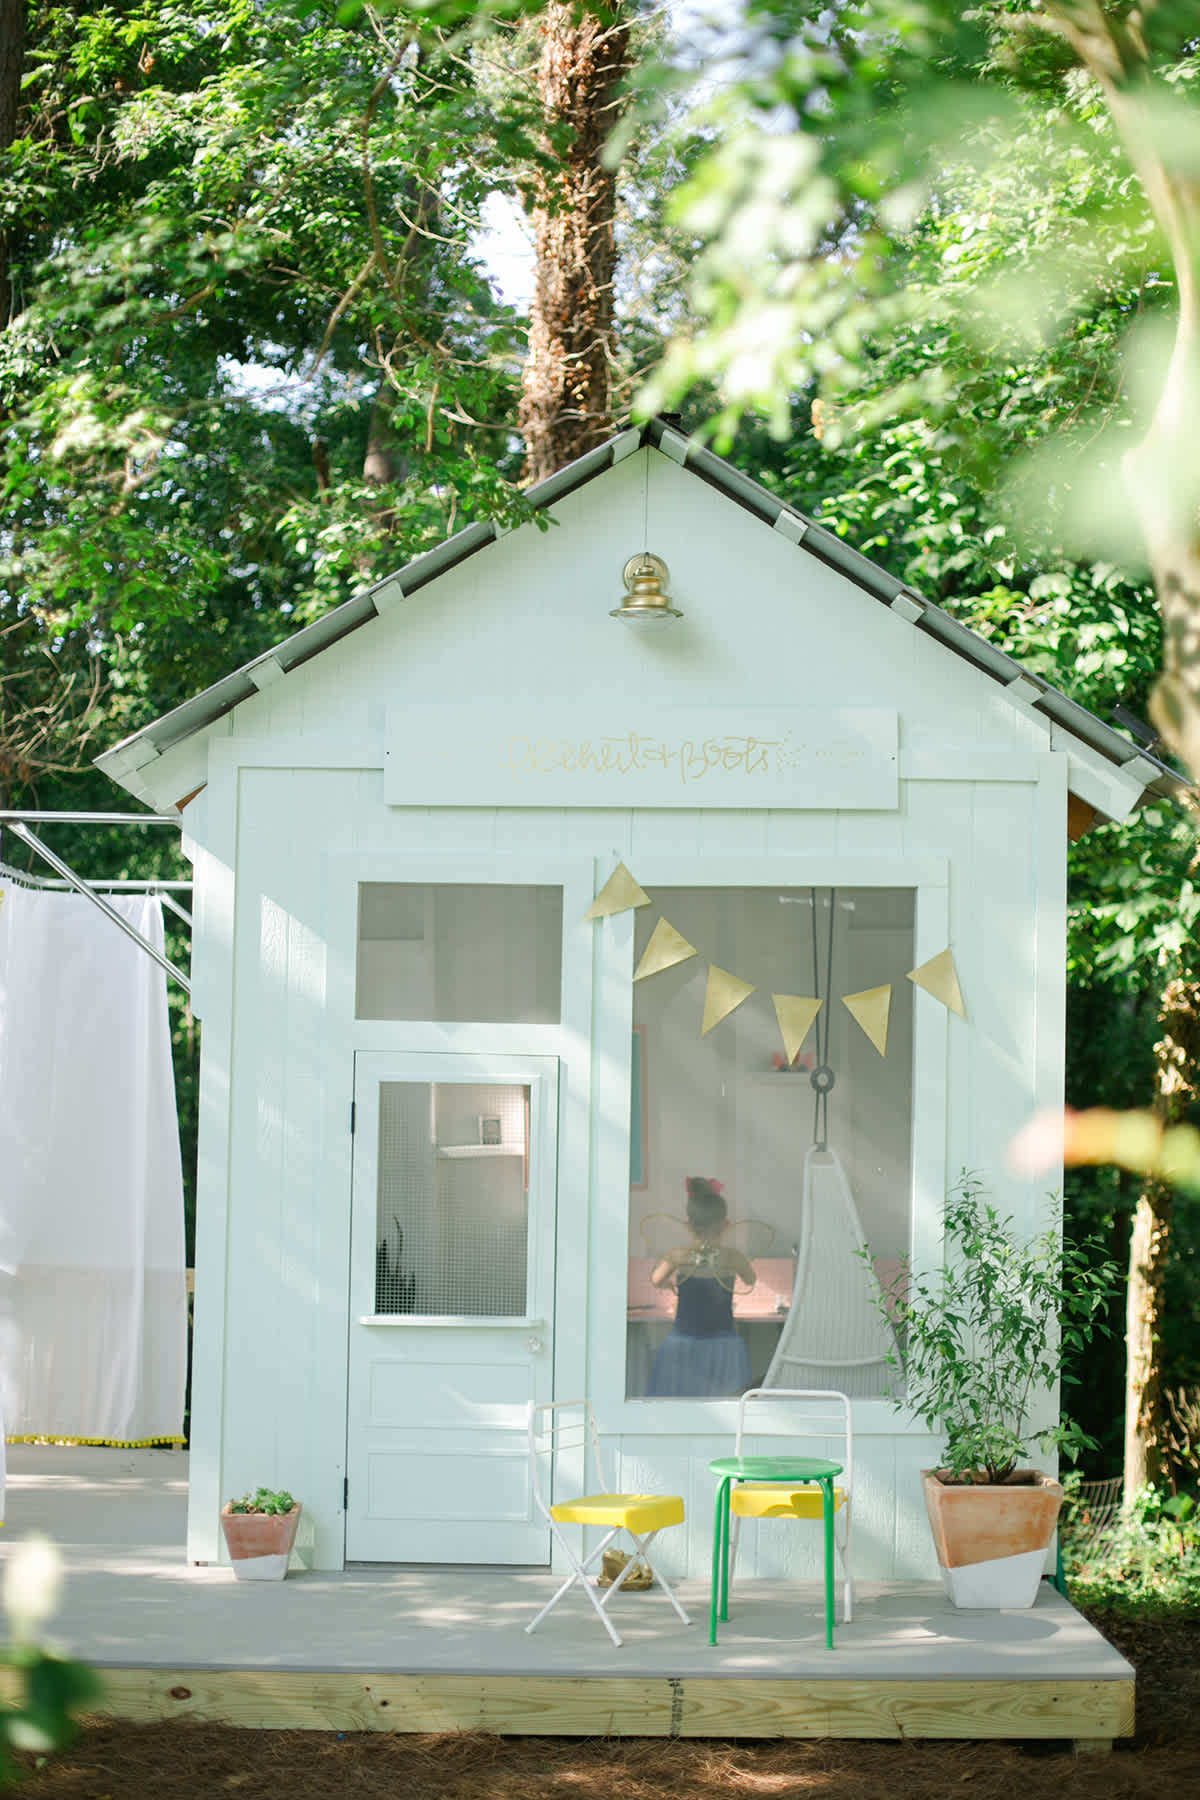 Whimsical Cozy Outdoor Cubby Playhouse